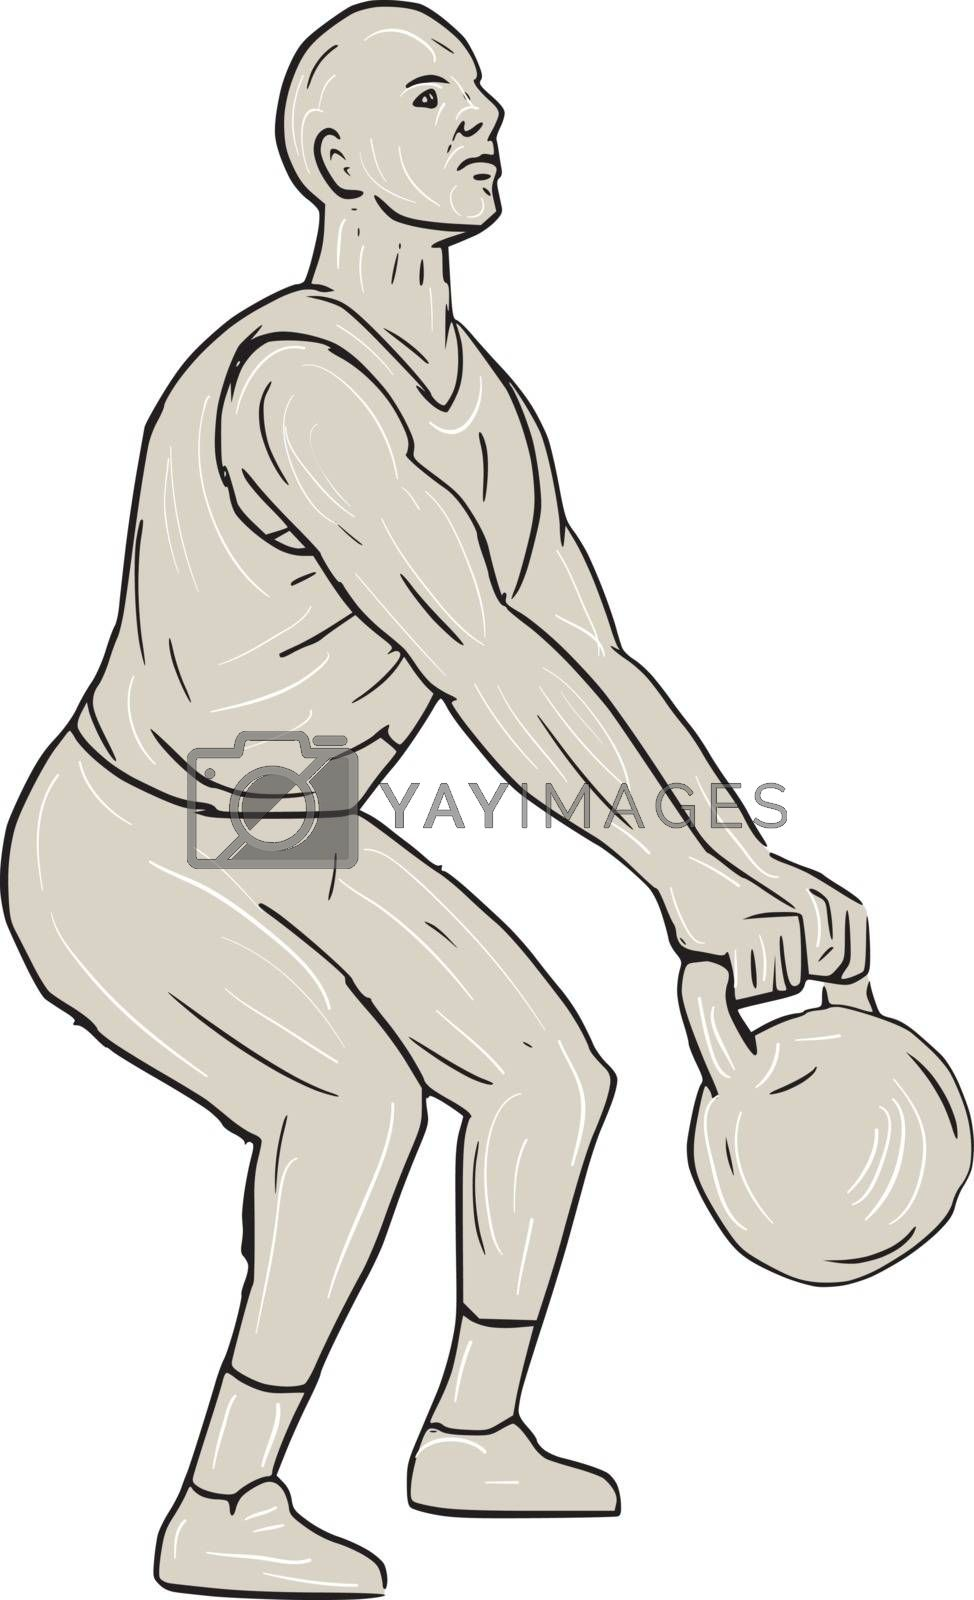 Drawing sketch style illustration of an athlete weightlifter working out squatting lifting swinging kettlebell with both hands viewed from the side set on isolated white background.